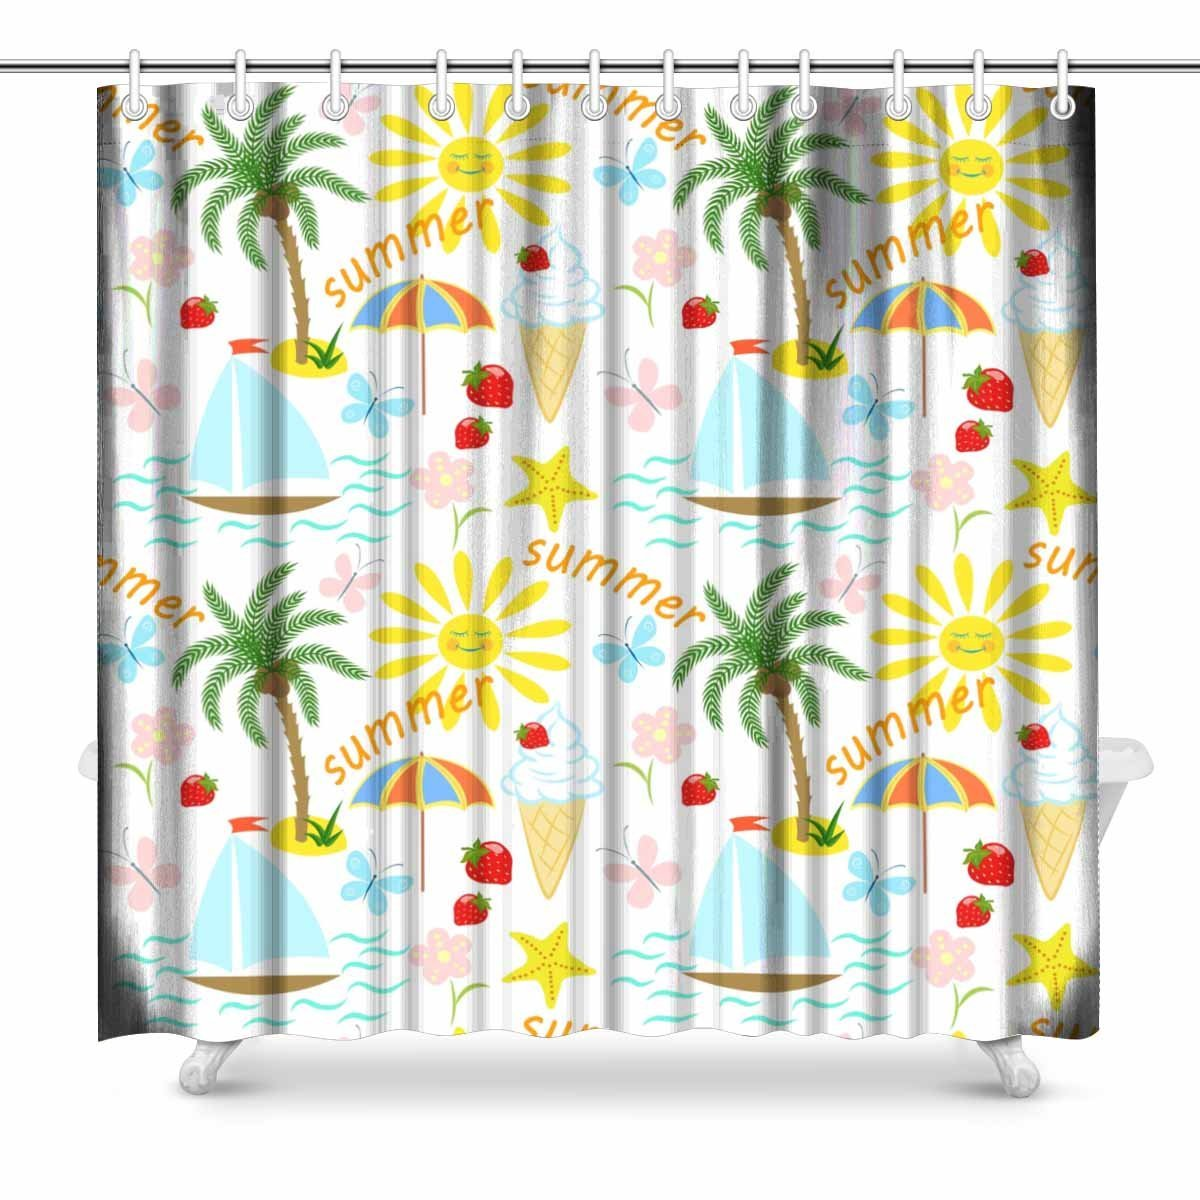 Us 16 99 Aplysia Summer Vacation Palm Tree Sun Sailing Ice Cream Butterflies Strawberries Bathroom Decor Shower Curtain Set With Hooks In Shower